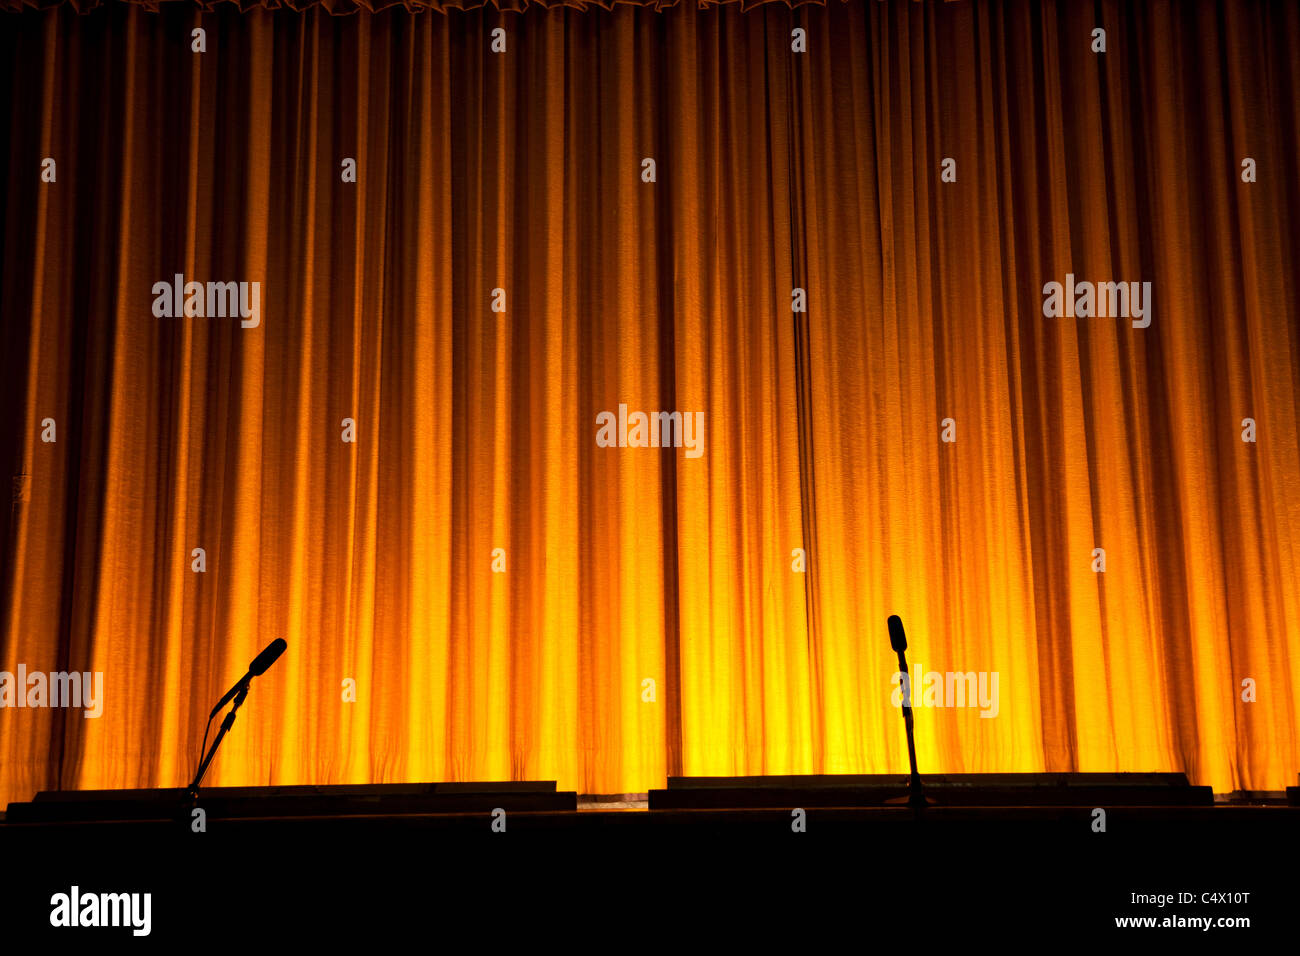 Yellow Stage Curtain for background - Stock Image